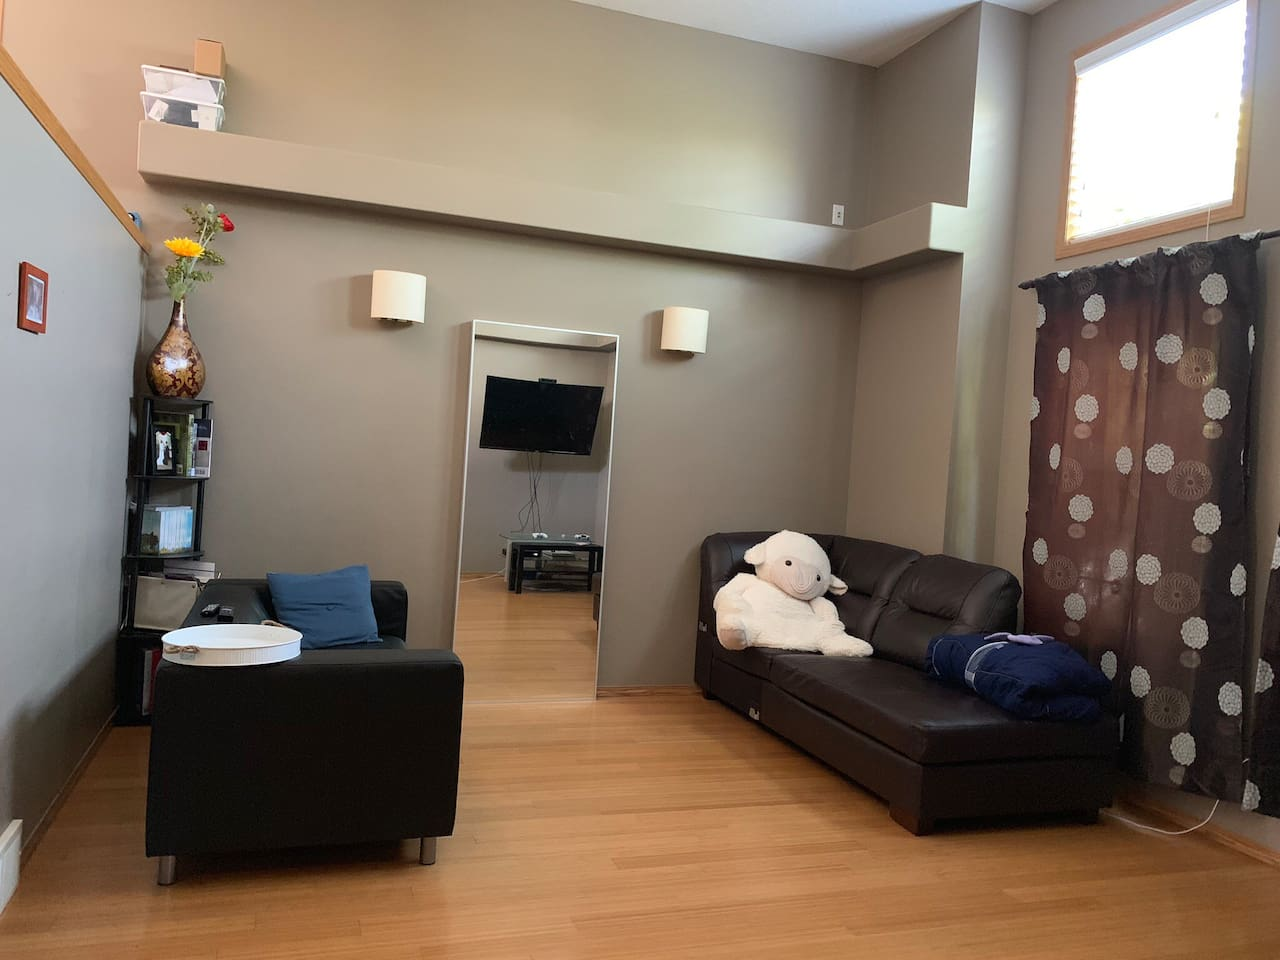 The entrance that is share with the host leads to the main living room directly. The host will minimize the usage of this area to give you more privacy. But running into each other every now and then is evitable.